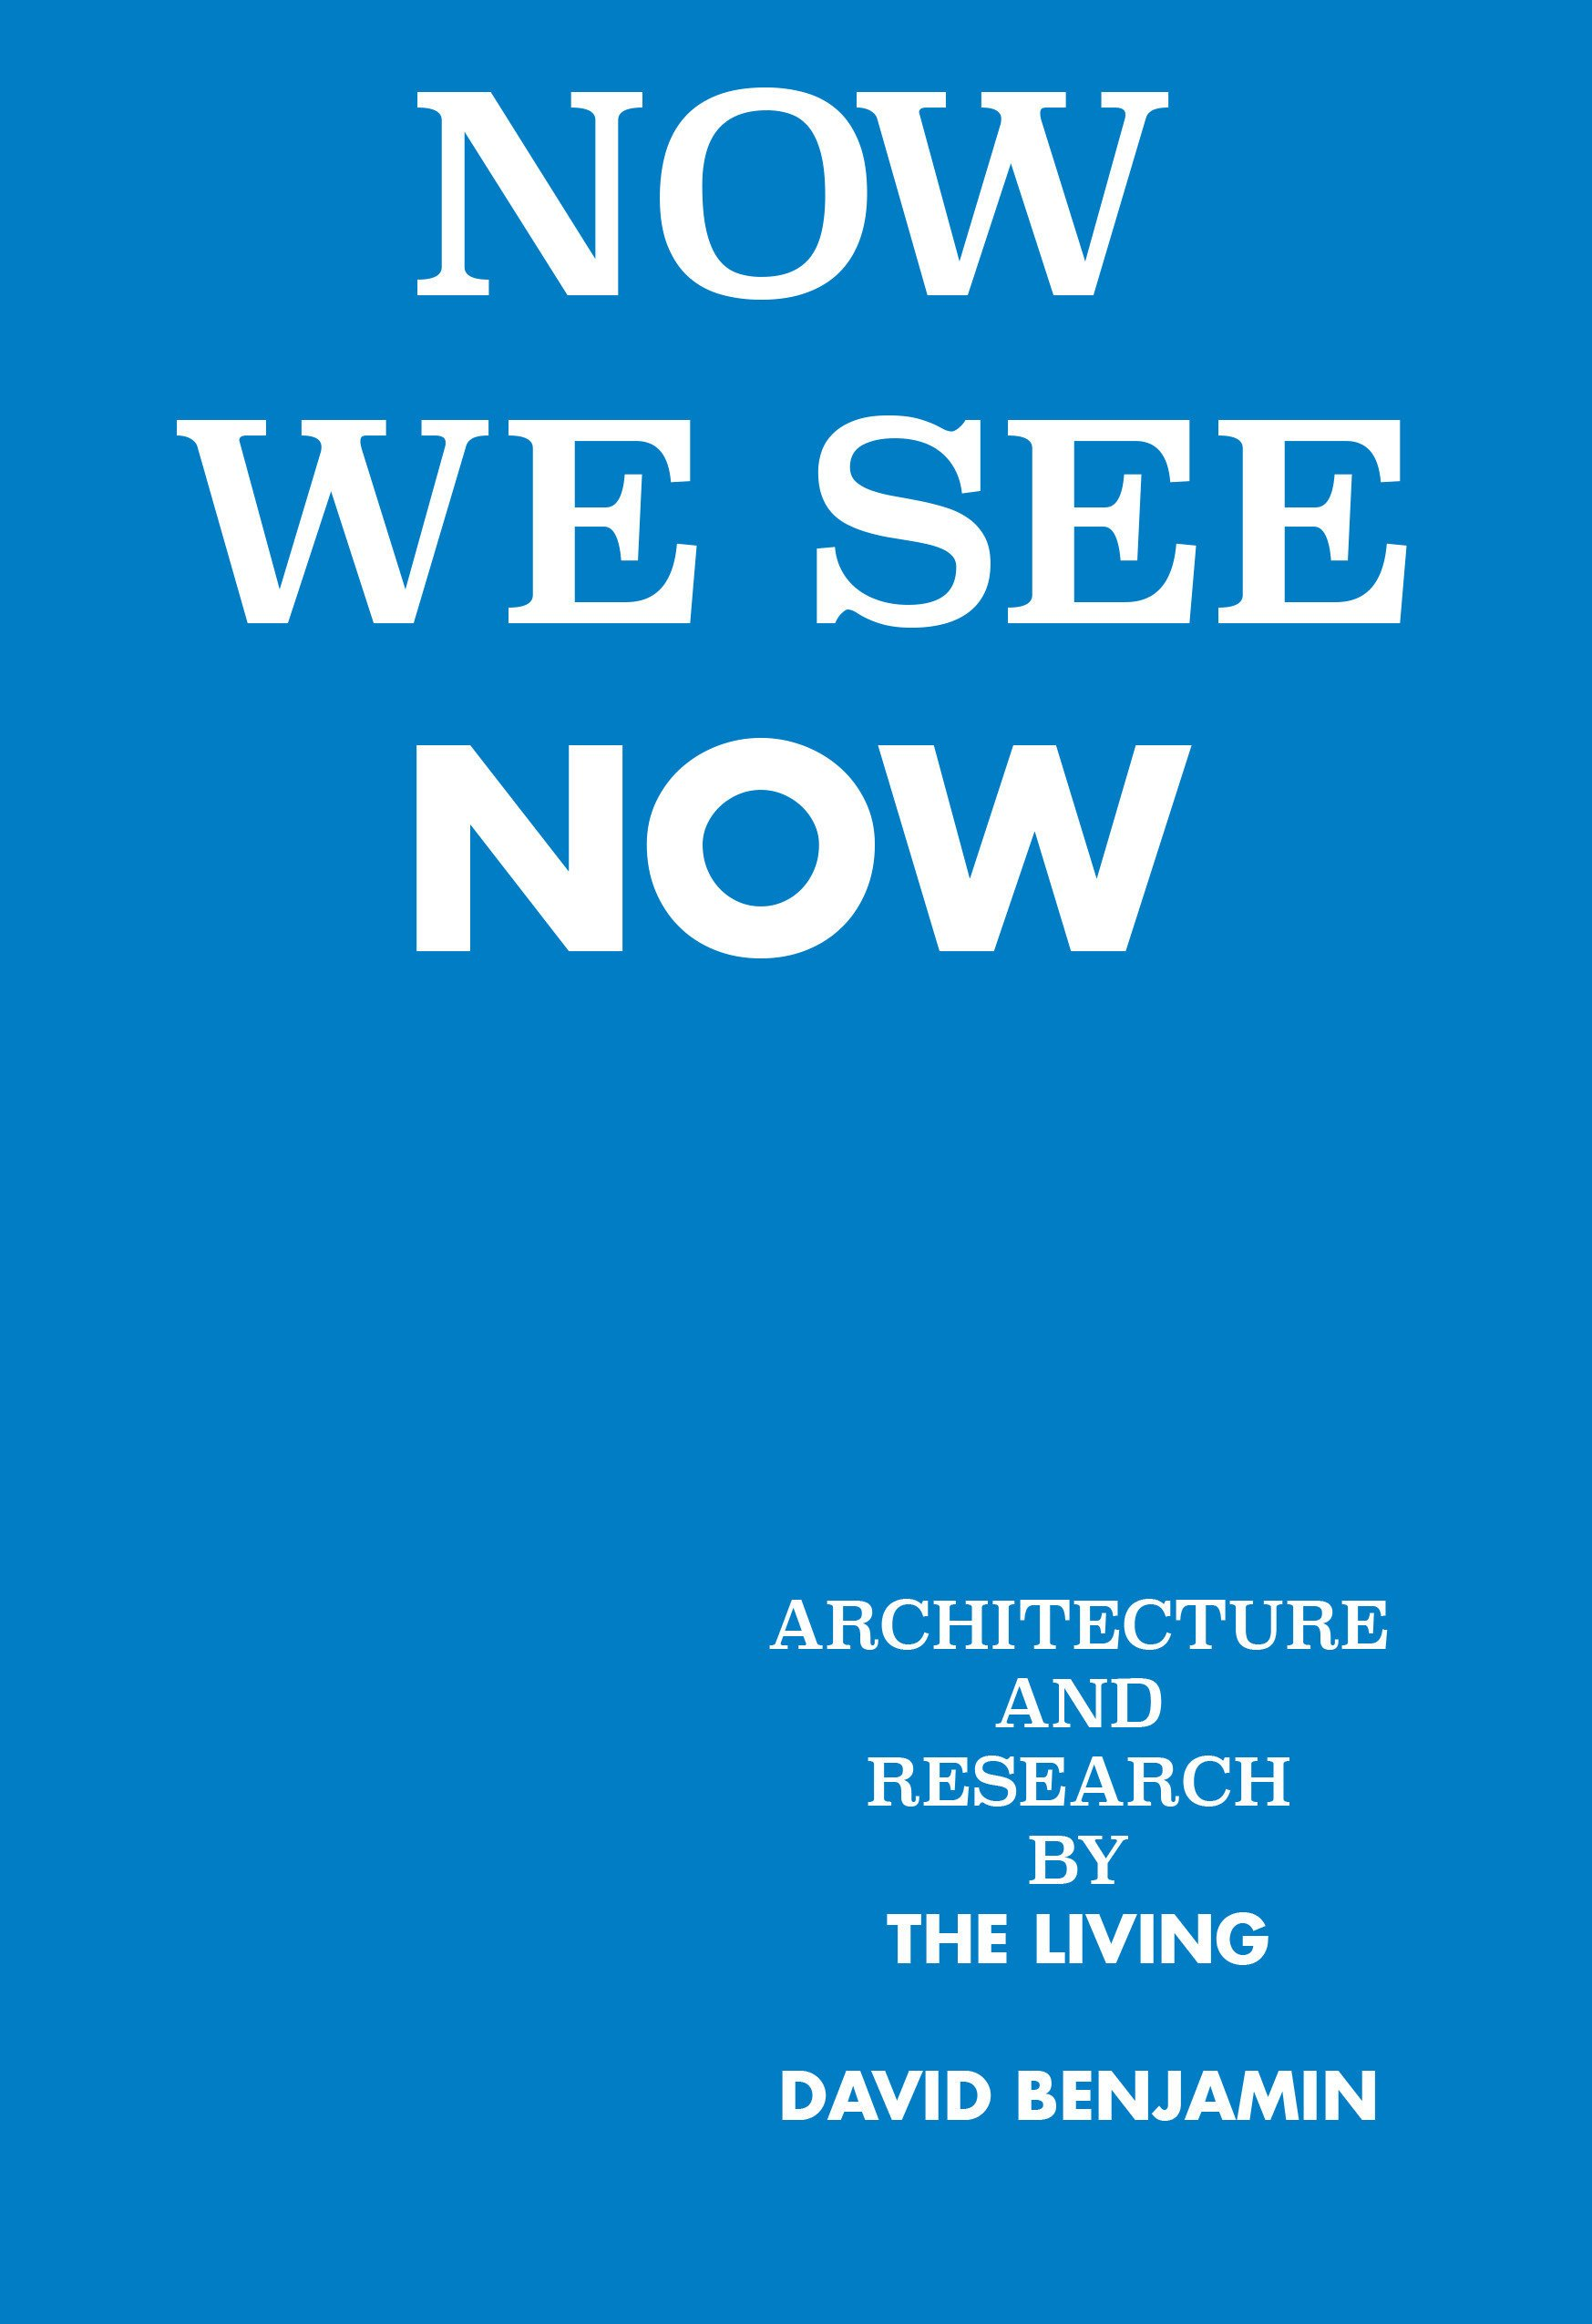 Architecture and Research by The Living Now We See Now